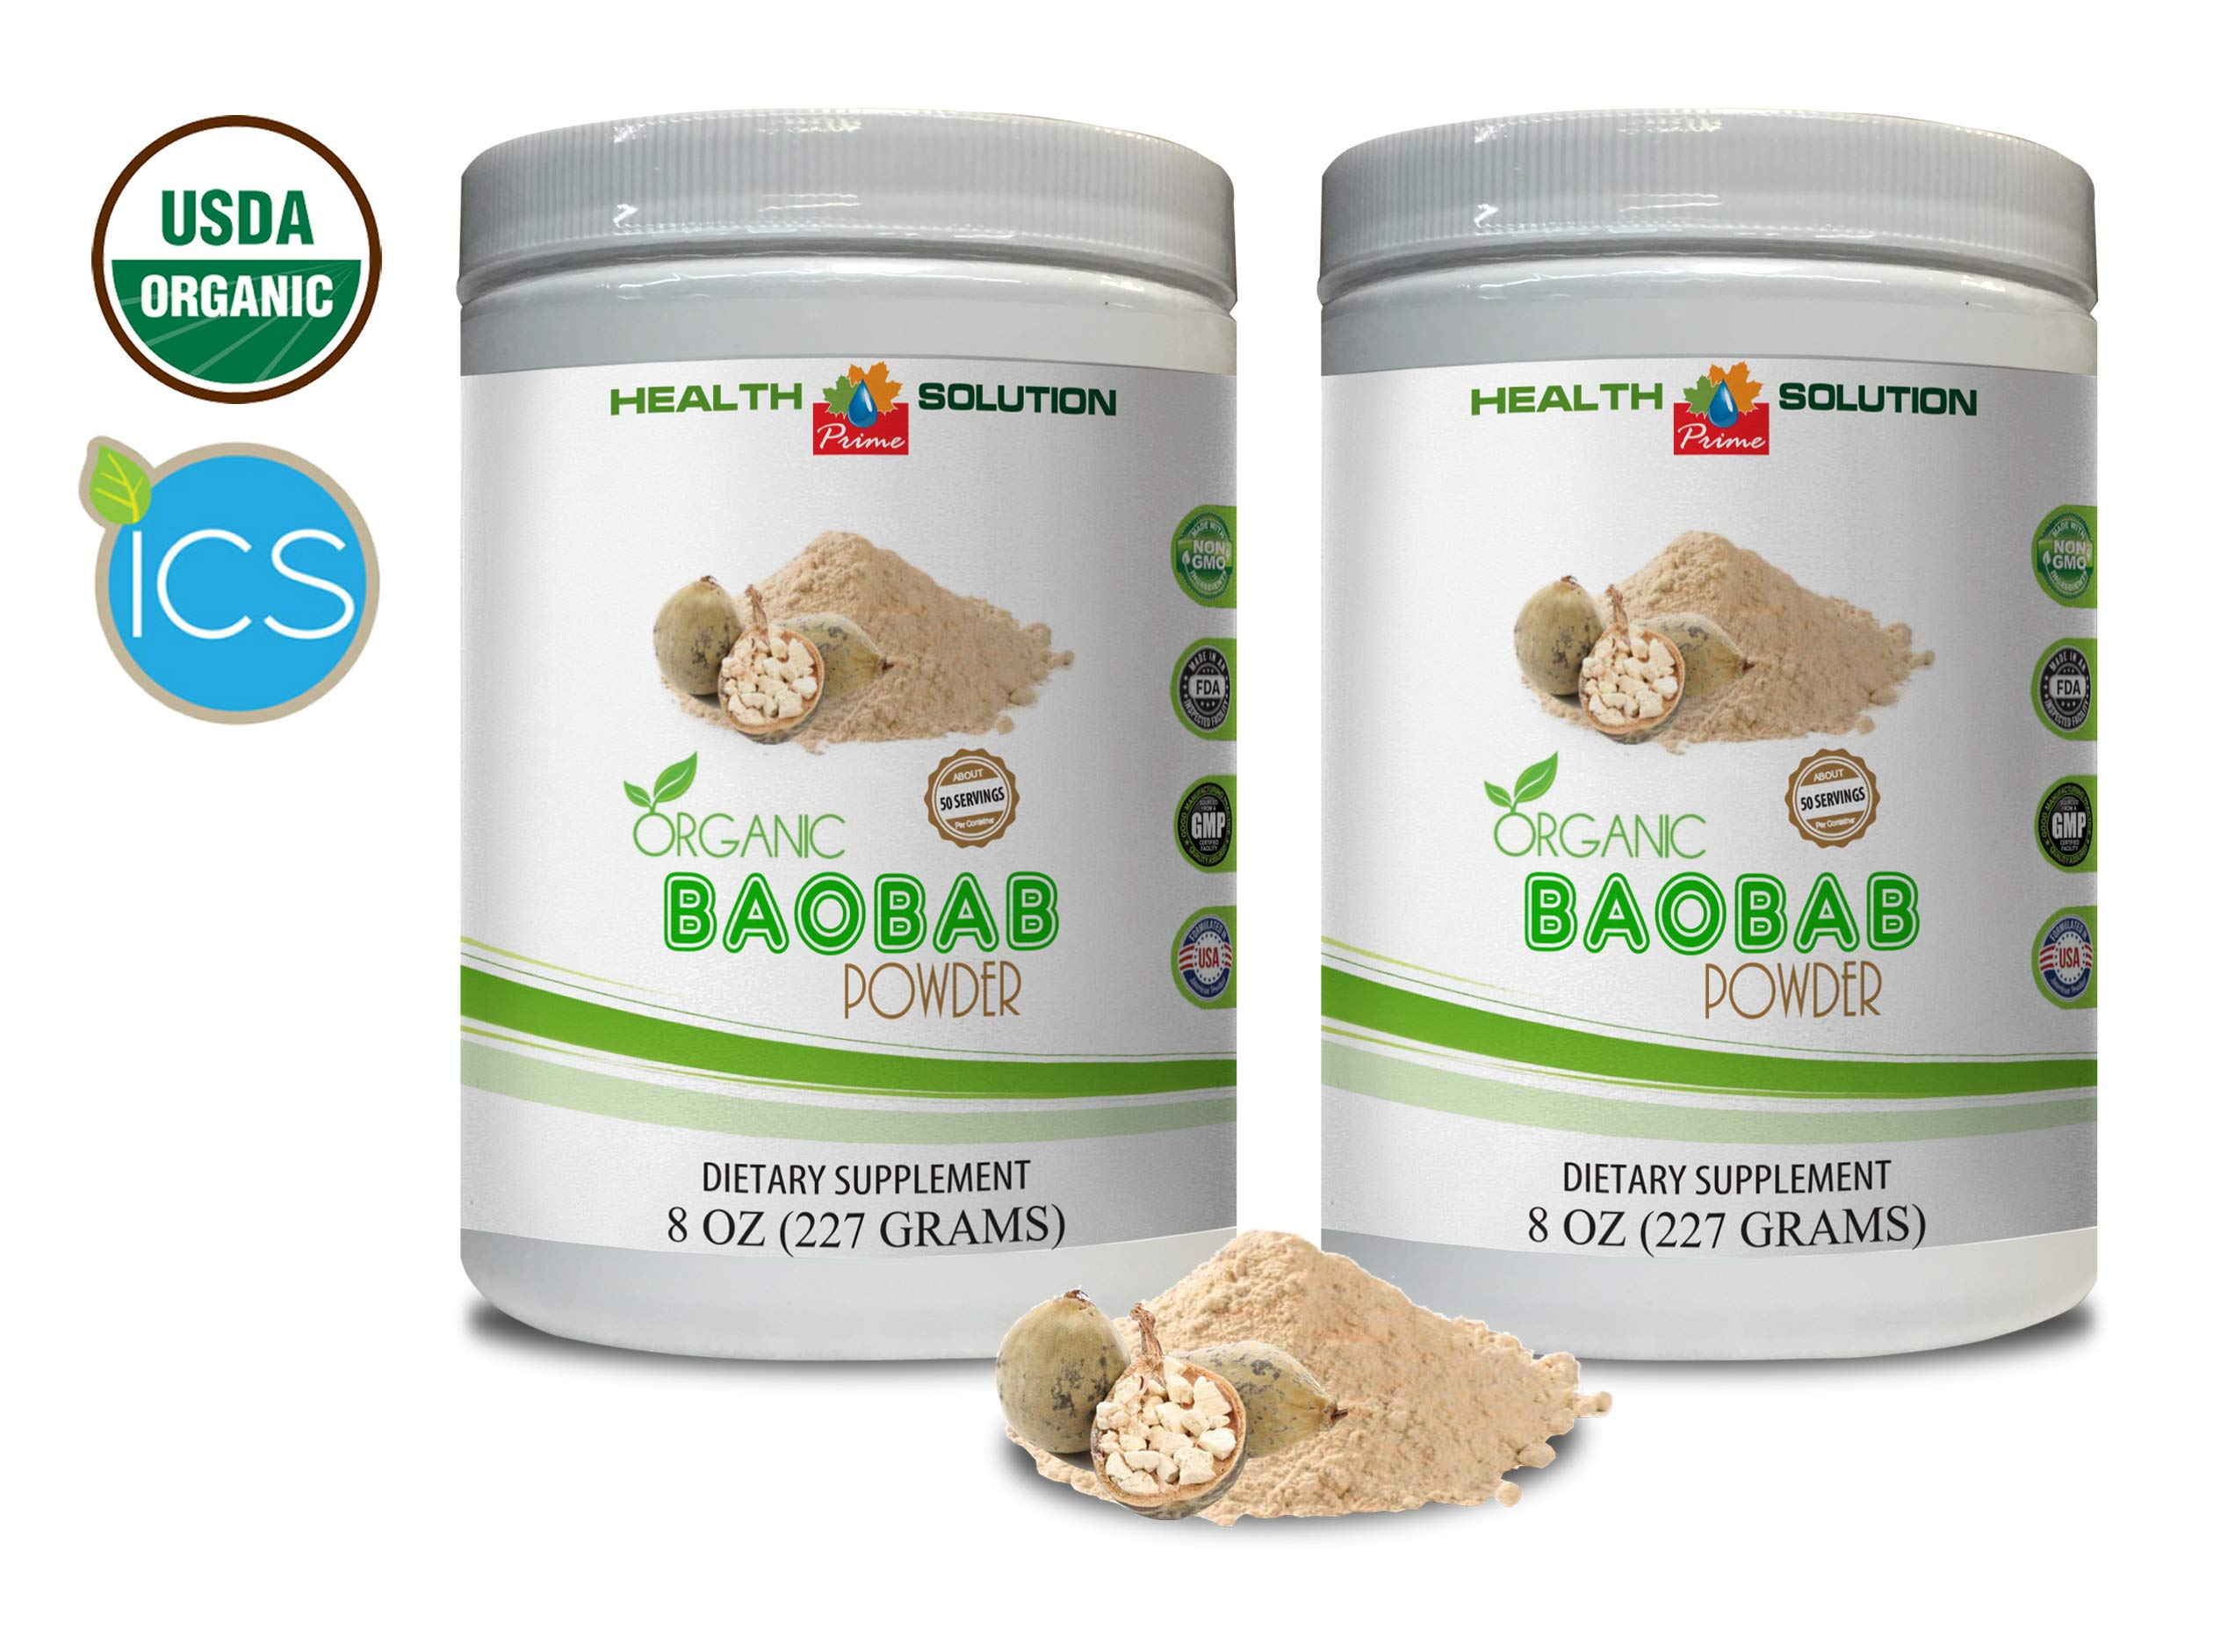 Immune Support Powder - Organic Baobab Powder - Baobab Boost Powder organicv - 2 Cans 16 OZ (100 Servings)